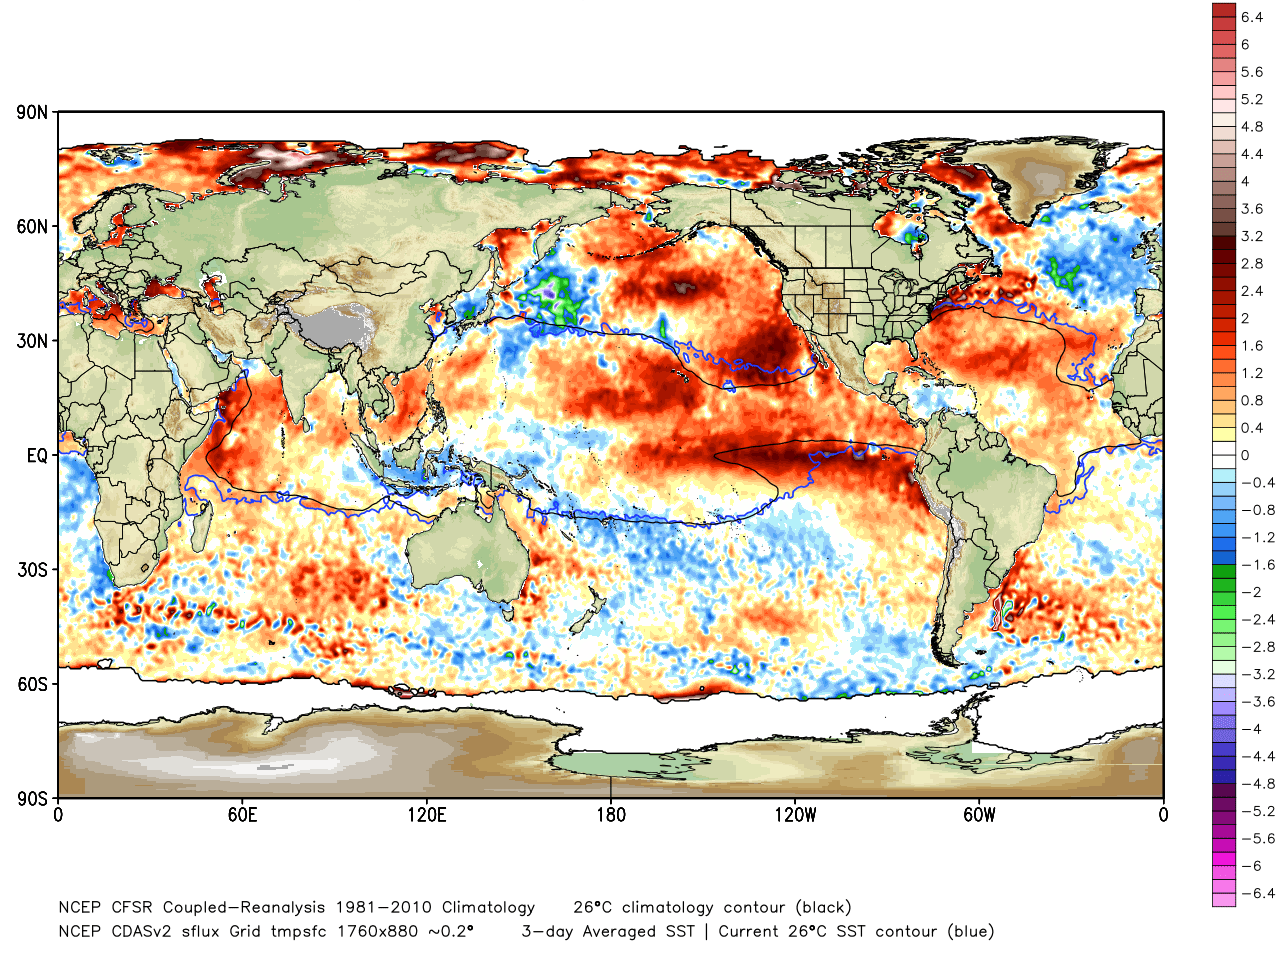 Figure 1. Sea Surface Temperature Anomalies as of September 8, 2015